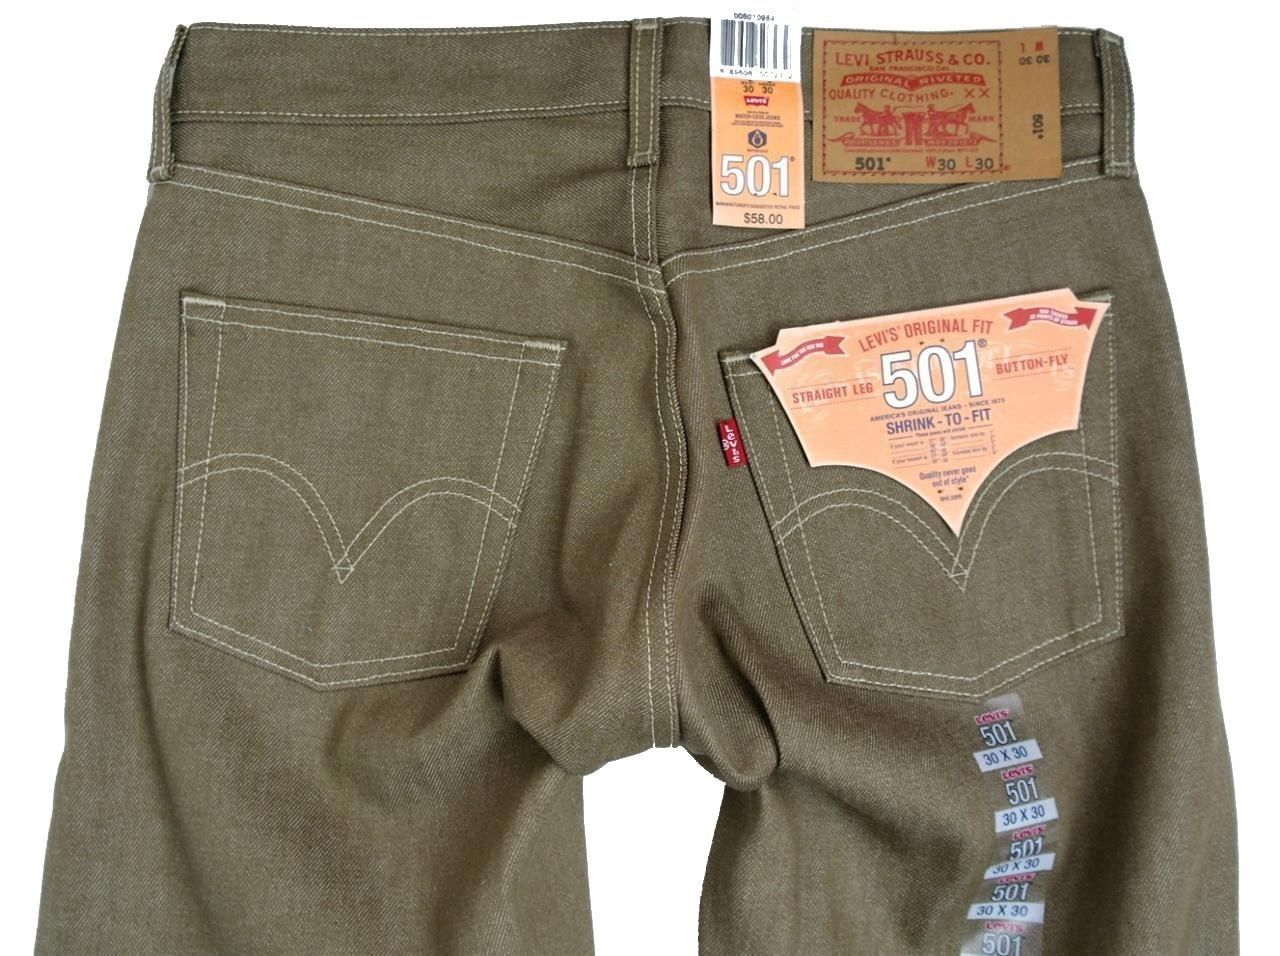 NEW NWT LEVI'S 501 MEN'S ORIGINAL FIT STRAIGHT LEG JEANS BUTTON FLY 501-1160